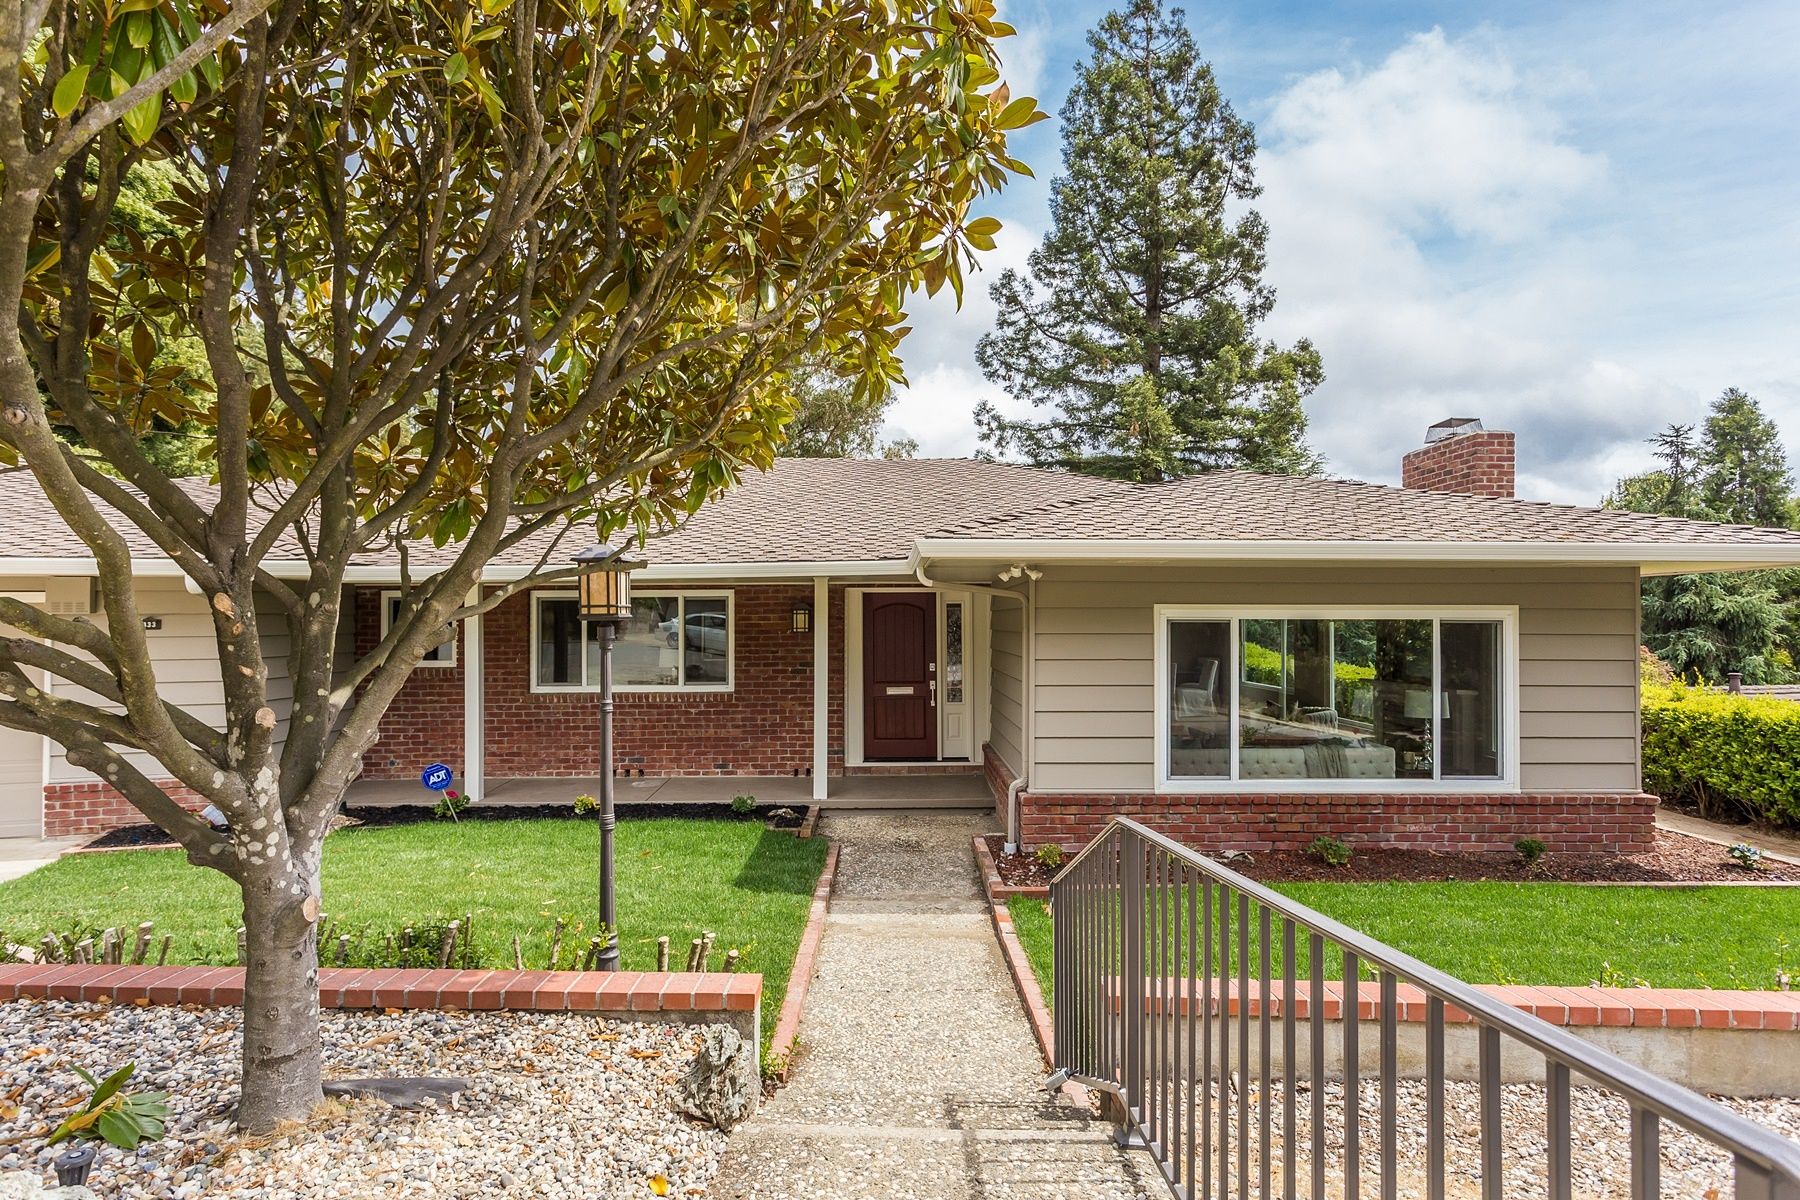 Single Family Home for Sale at Sequoyah At Its Finest 433 Fox Hills Oakland, California 94605 United States